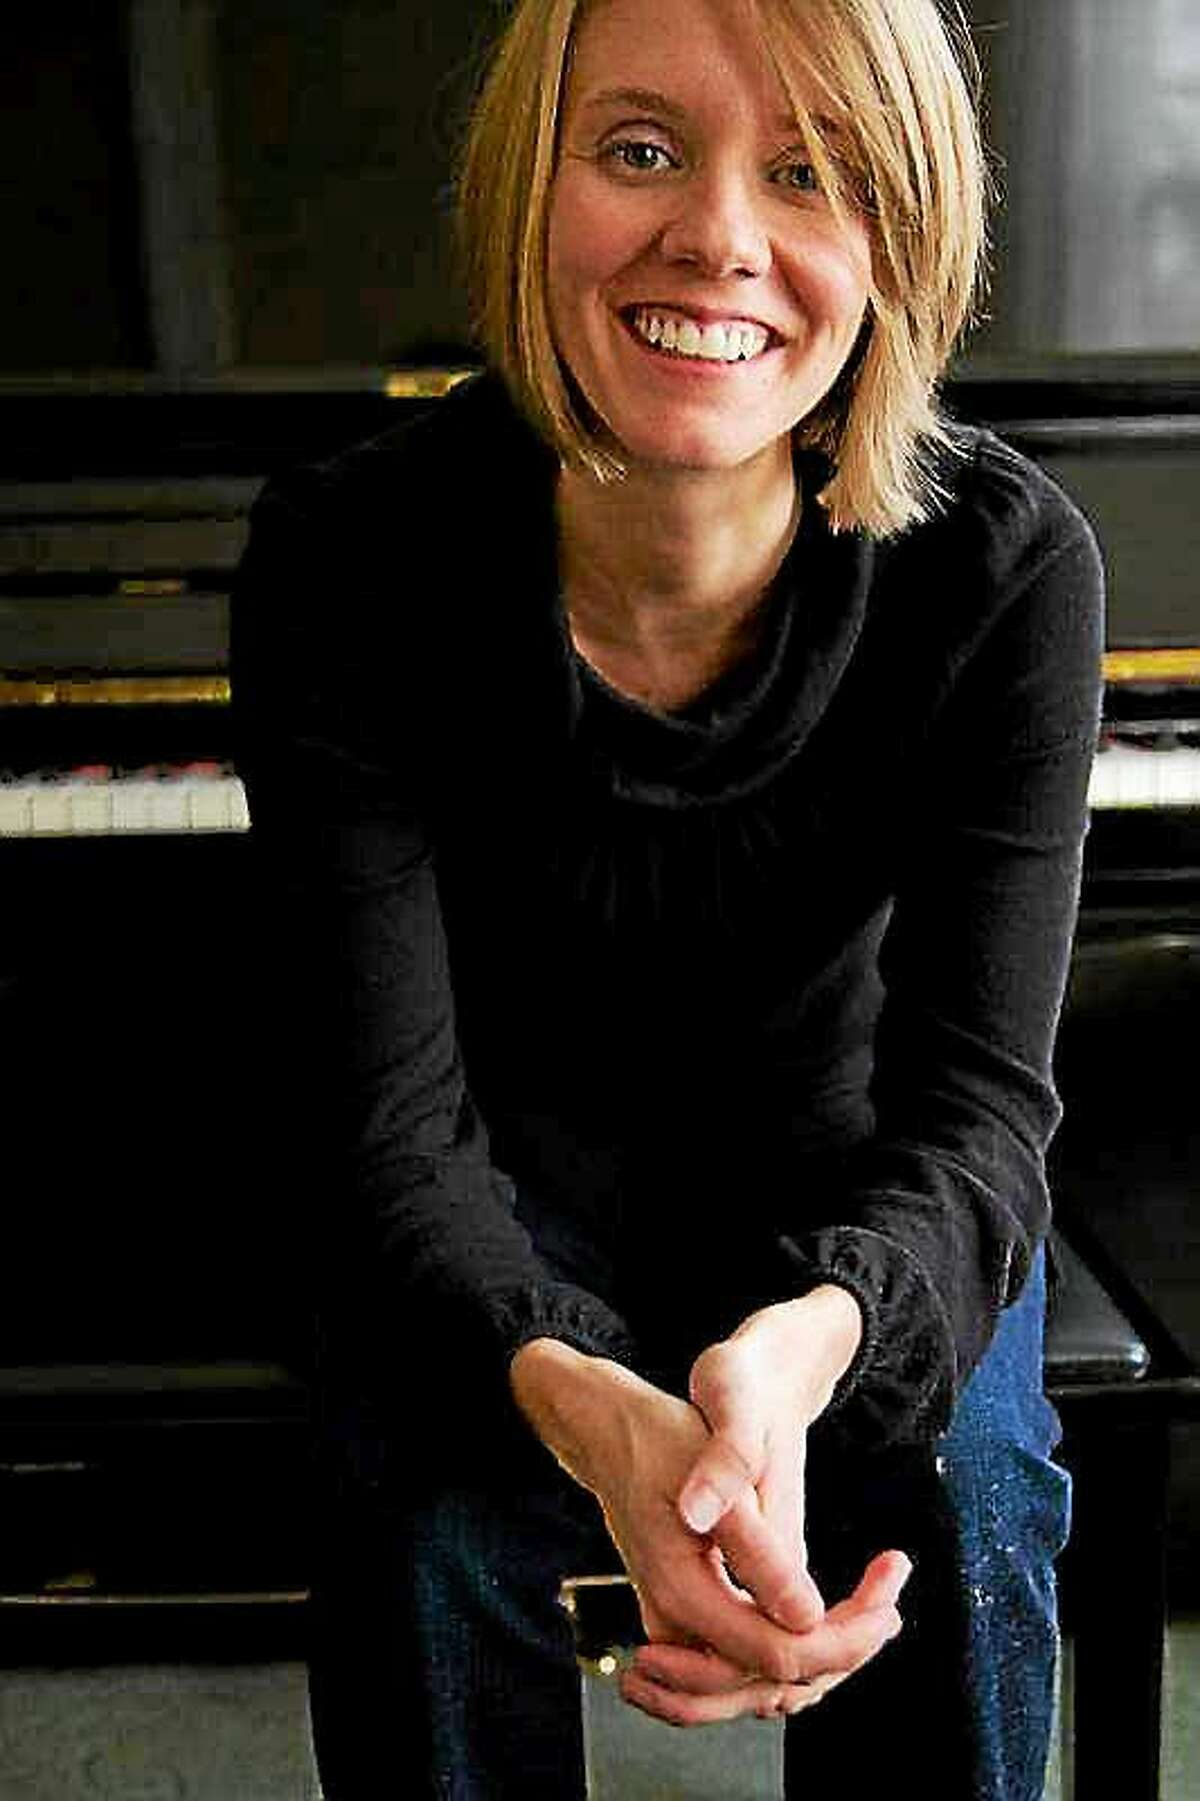 Submitted photo - New England Arts and Entertainment Jen Allen and her Trio will perform at the Palace Theater's Poli Club in Waterbury Sept. 5.